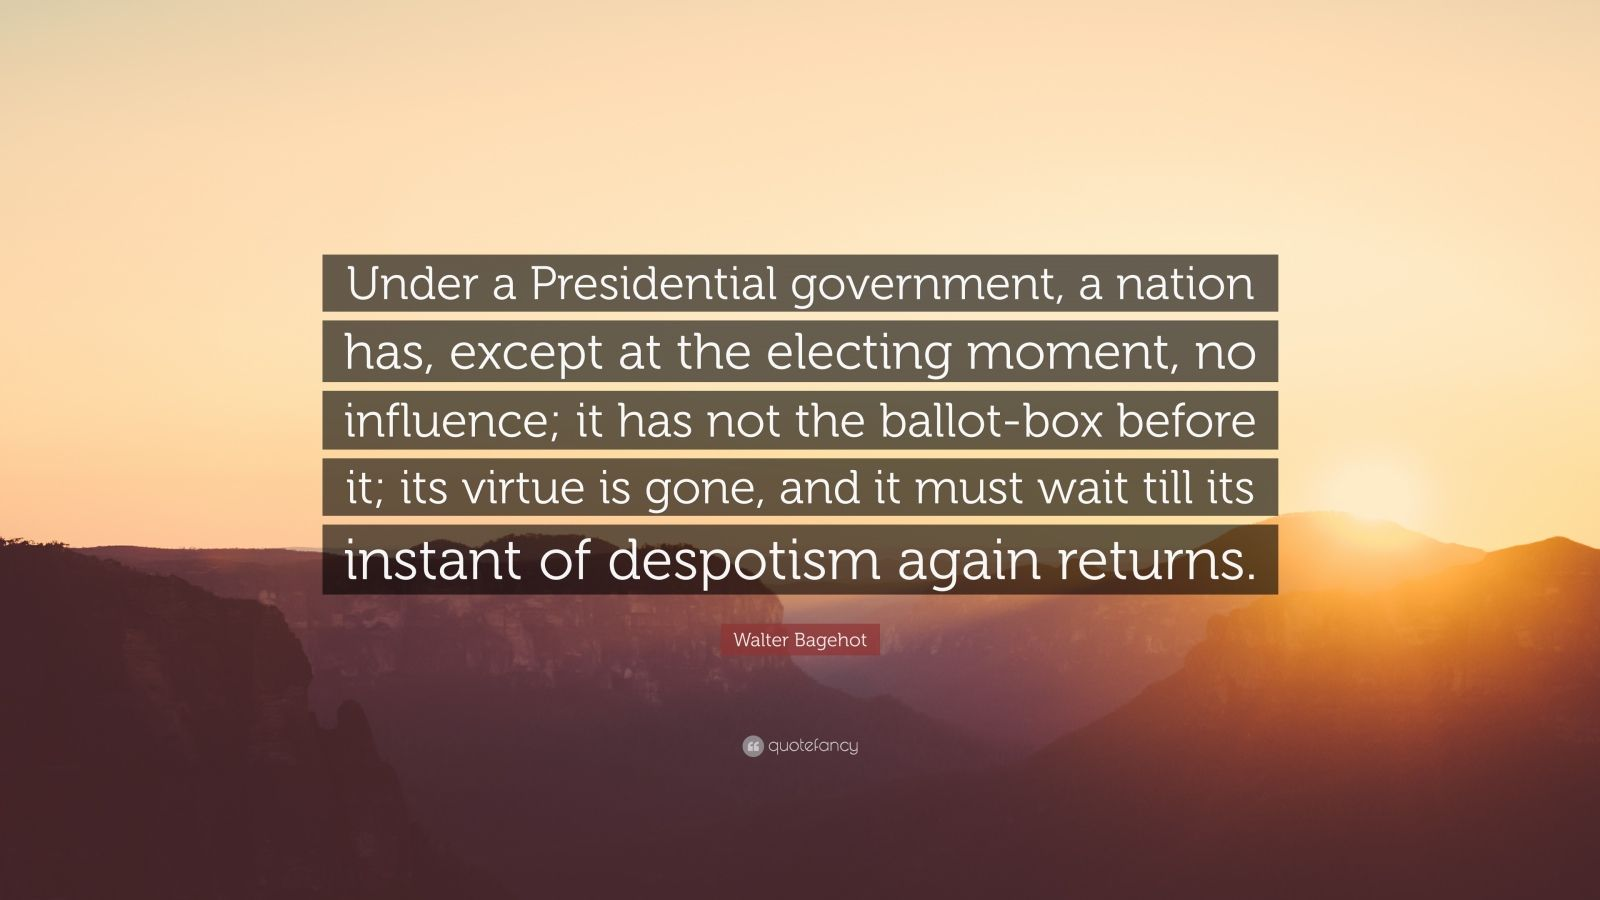 """Walter Bagehot Quote: """"Under a Presidential government, a nation has, except at the electing moment, no influence; it has not the ballot-box before it; its virtue is gone, and it must wait till its instant of despotism again returns."""""""